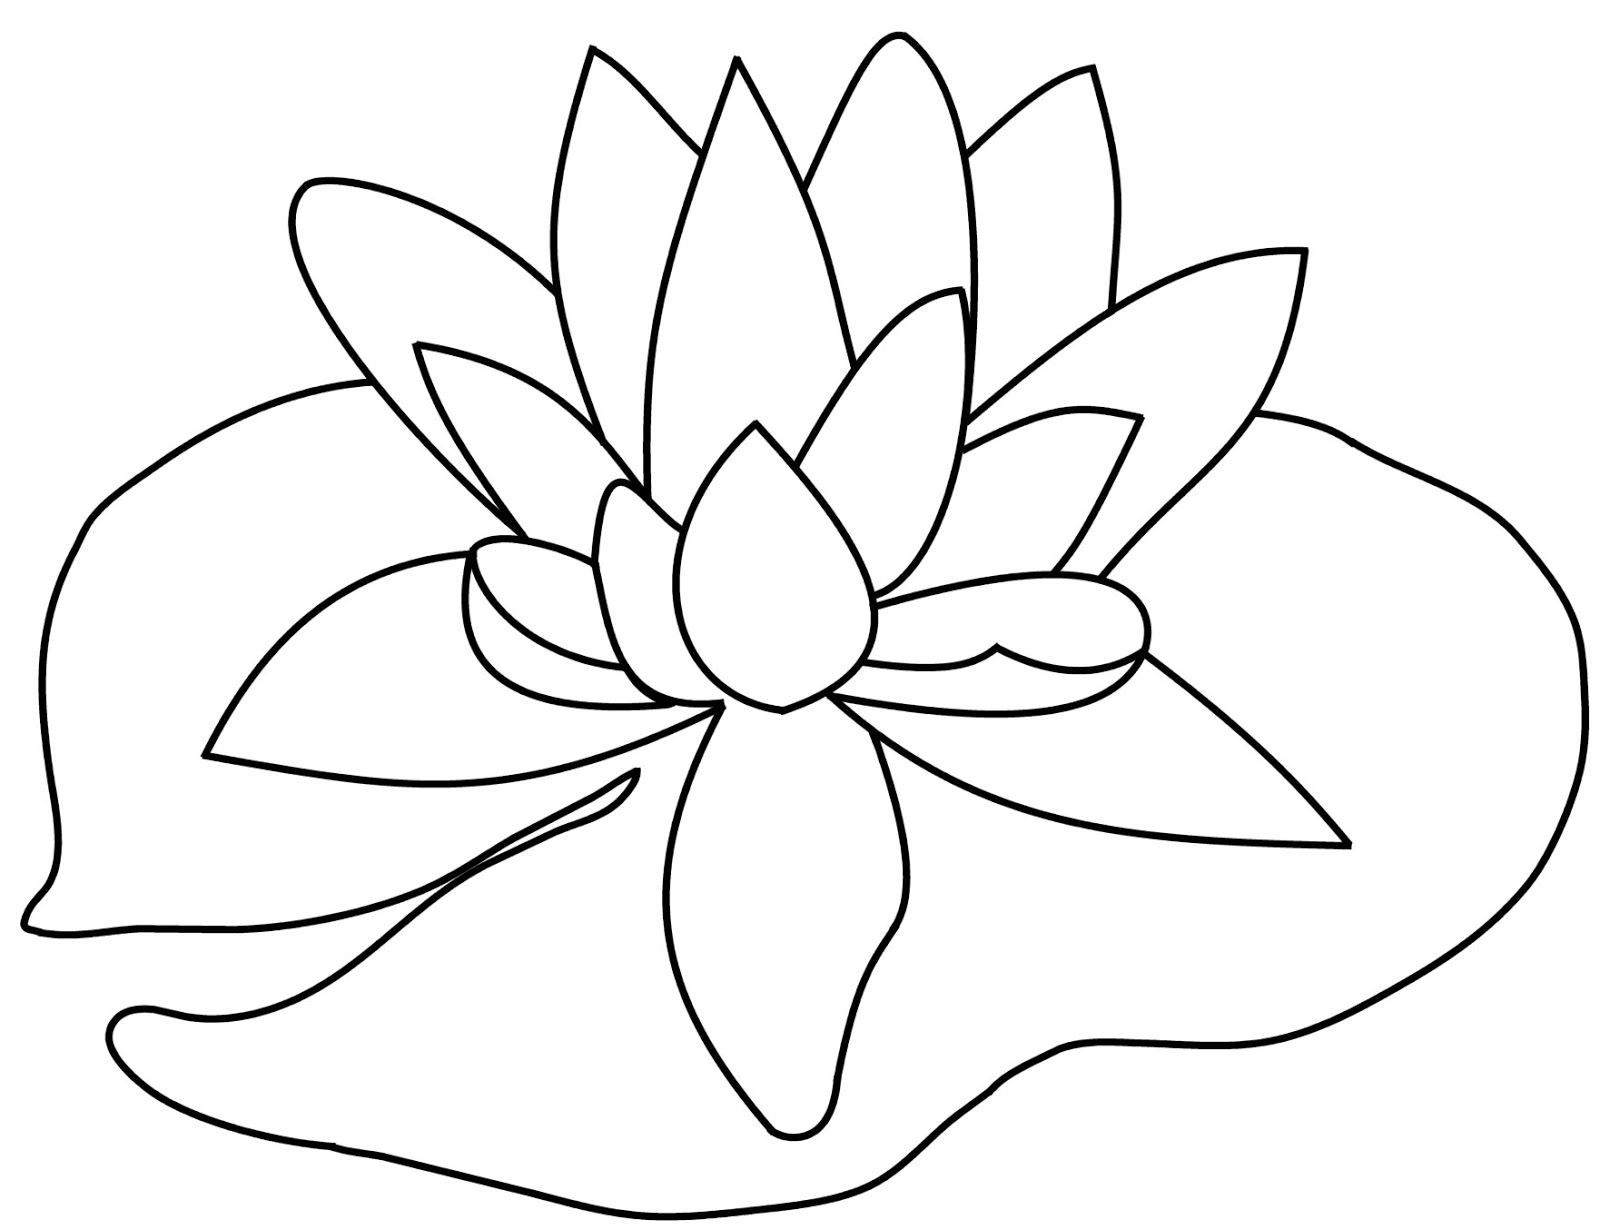 how to draw a lily simple lily drawing at getdrawings free download lily how to draw a